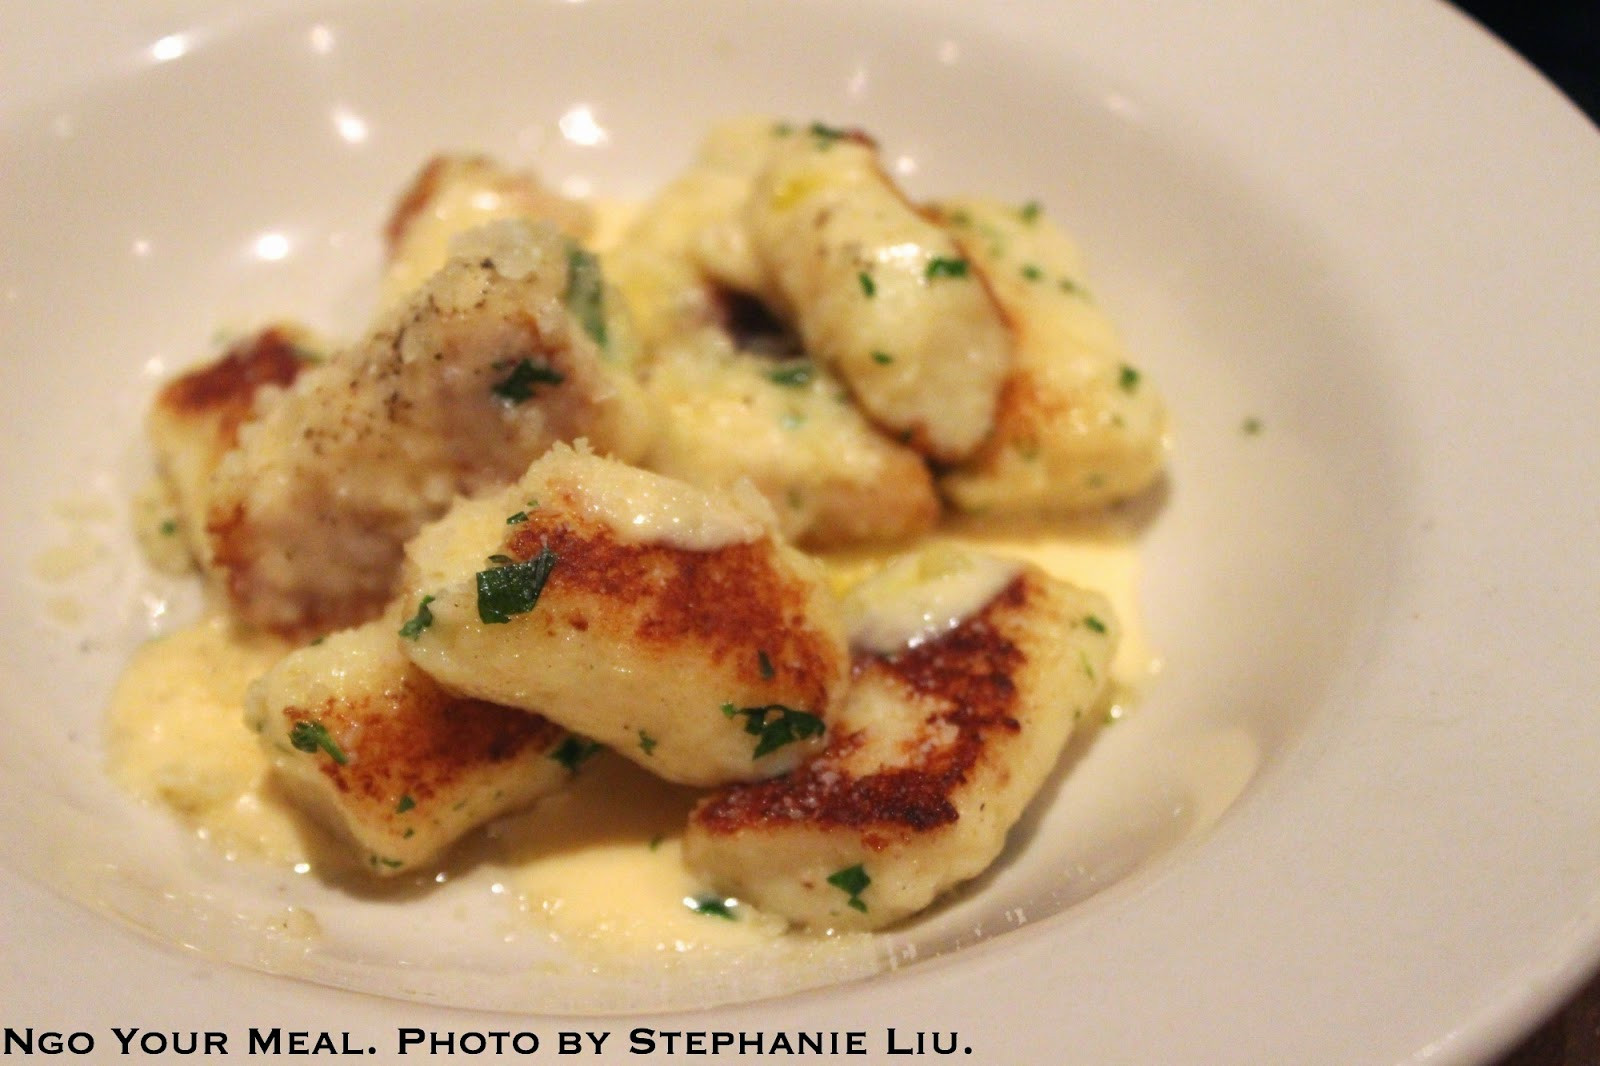 Toasted Ricotta Gnocchi with parmesan, Italian parsley, and white truffle crème at Jane